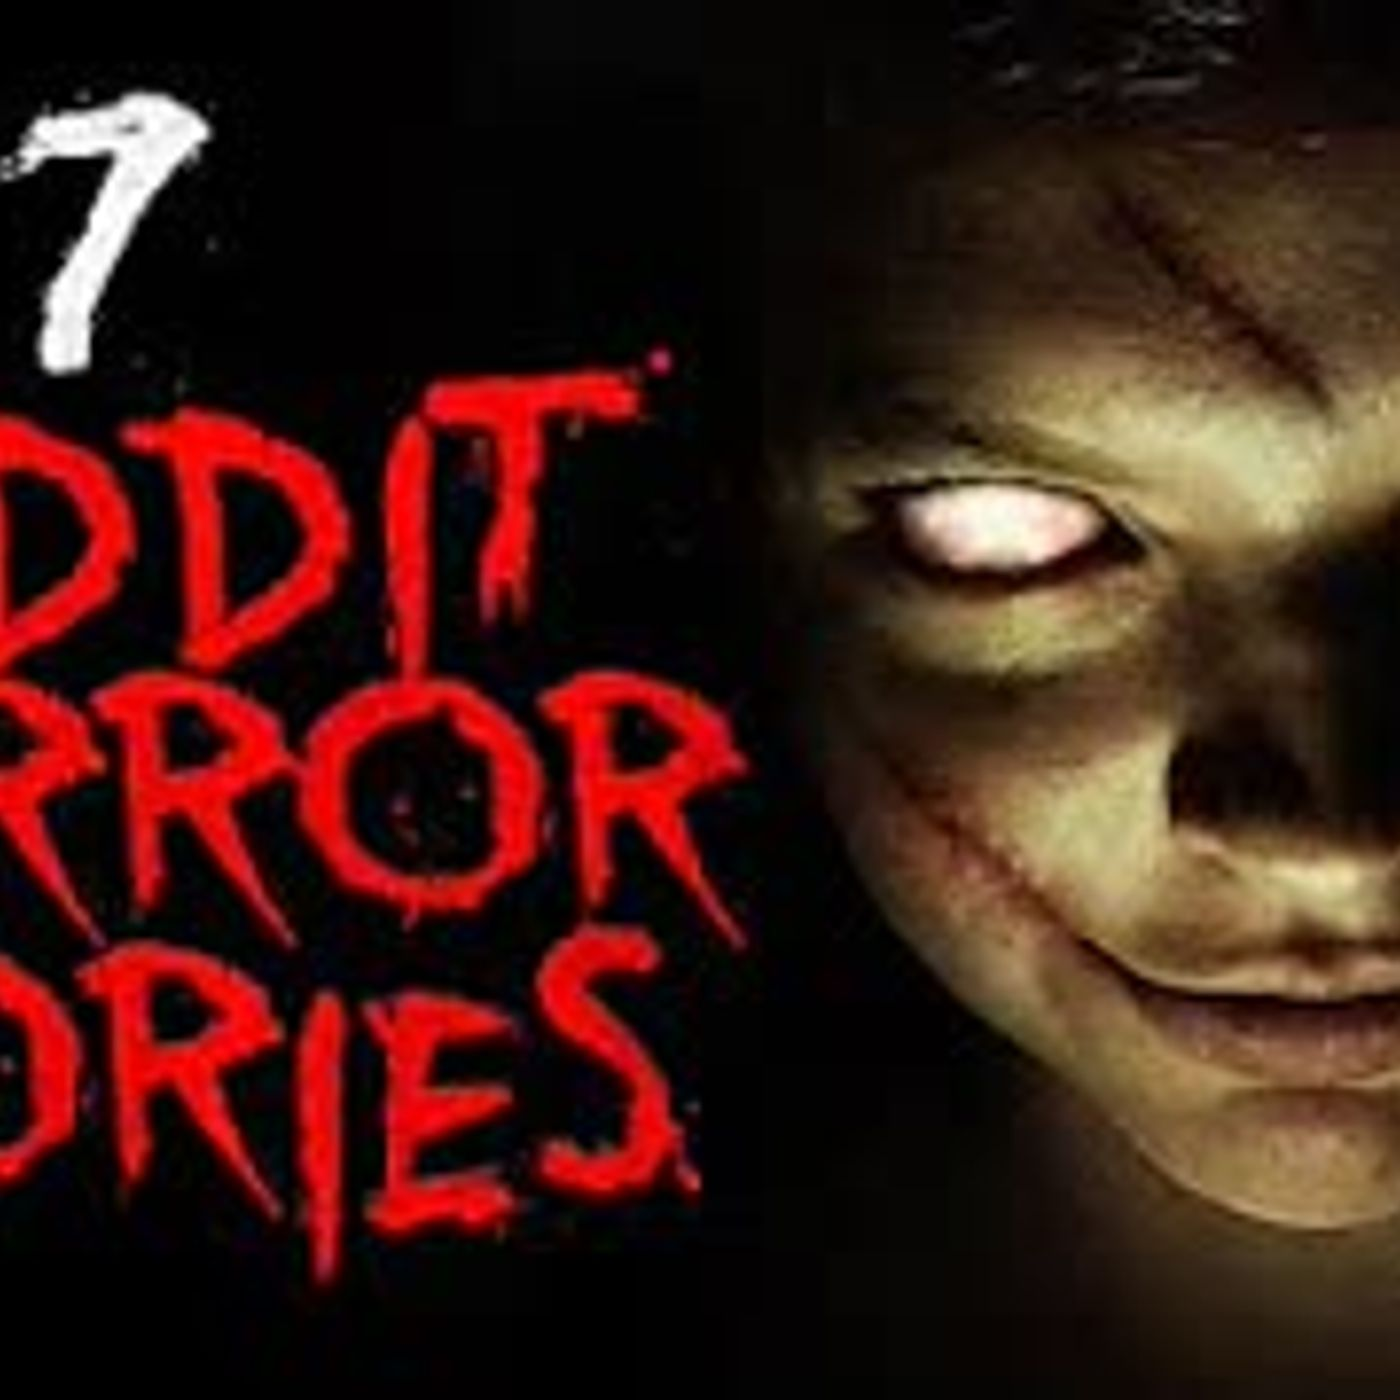 7 Scary Reddit Horror Stories To Appease Your Sleep Paralysis D█mon